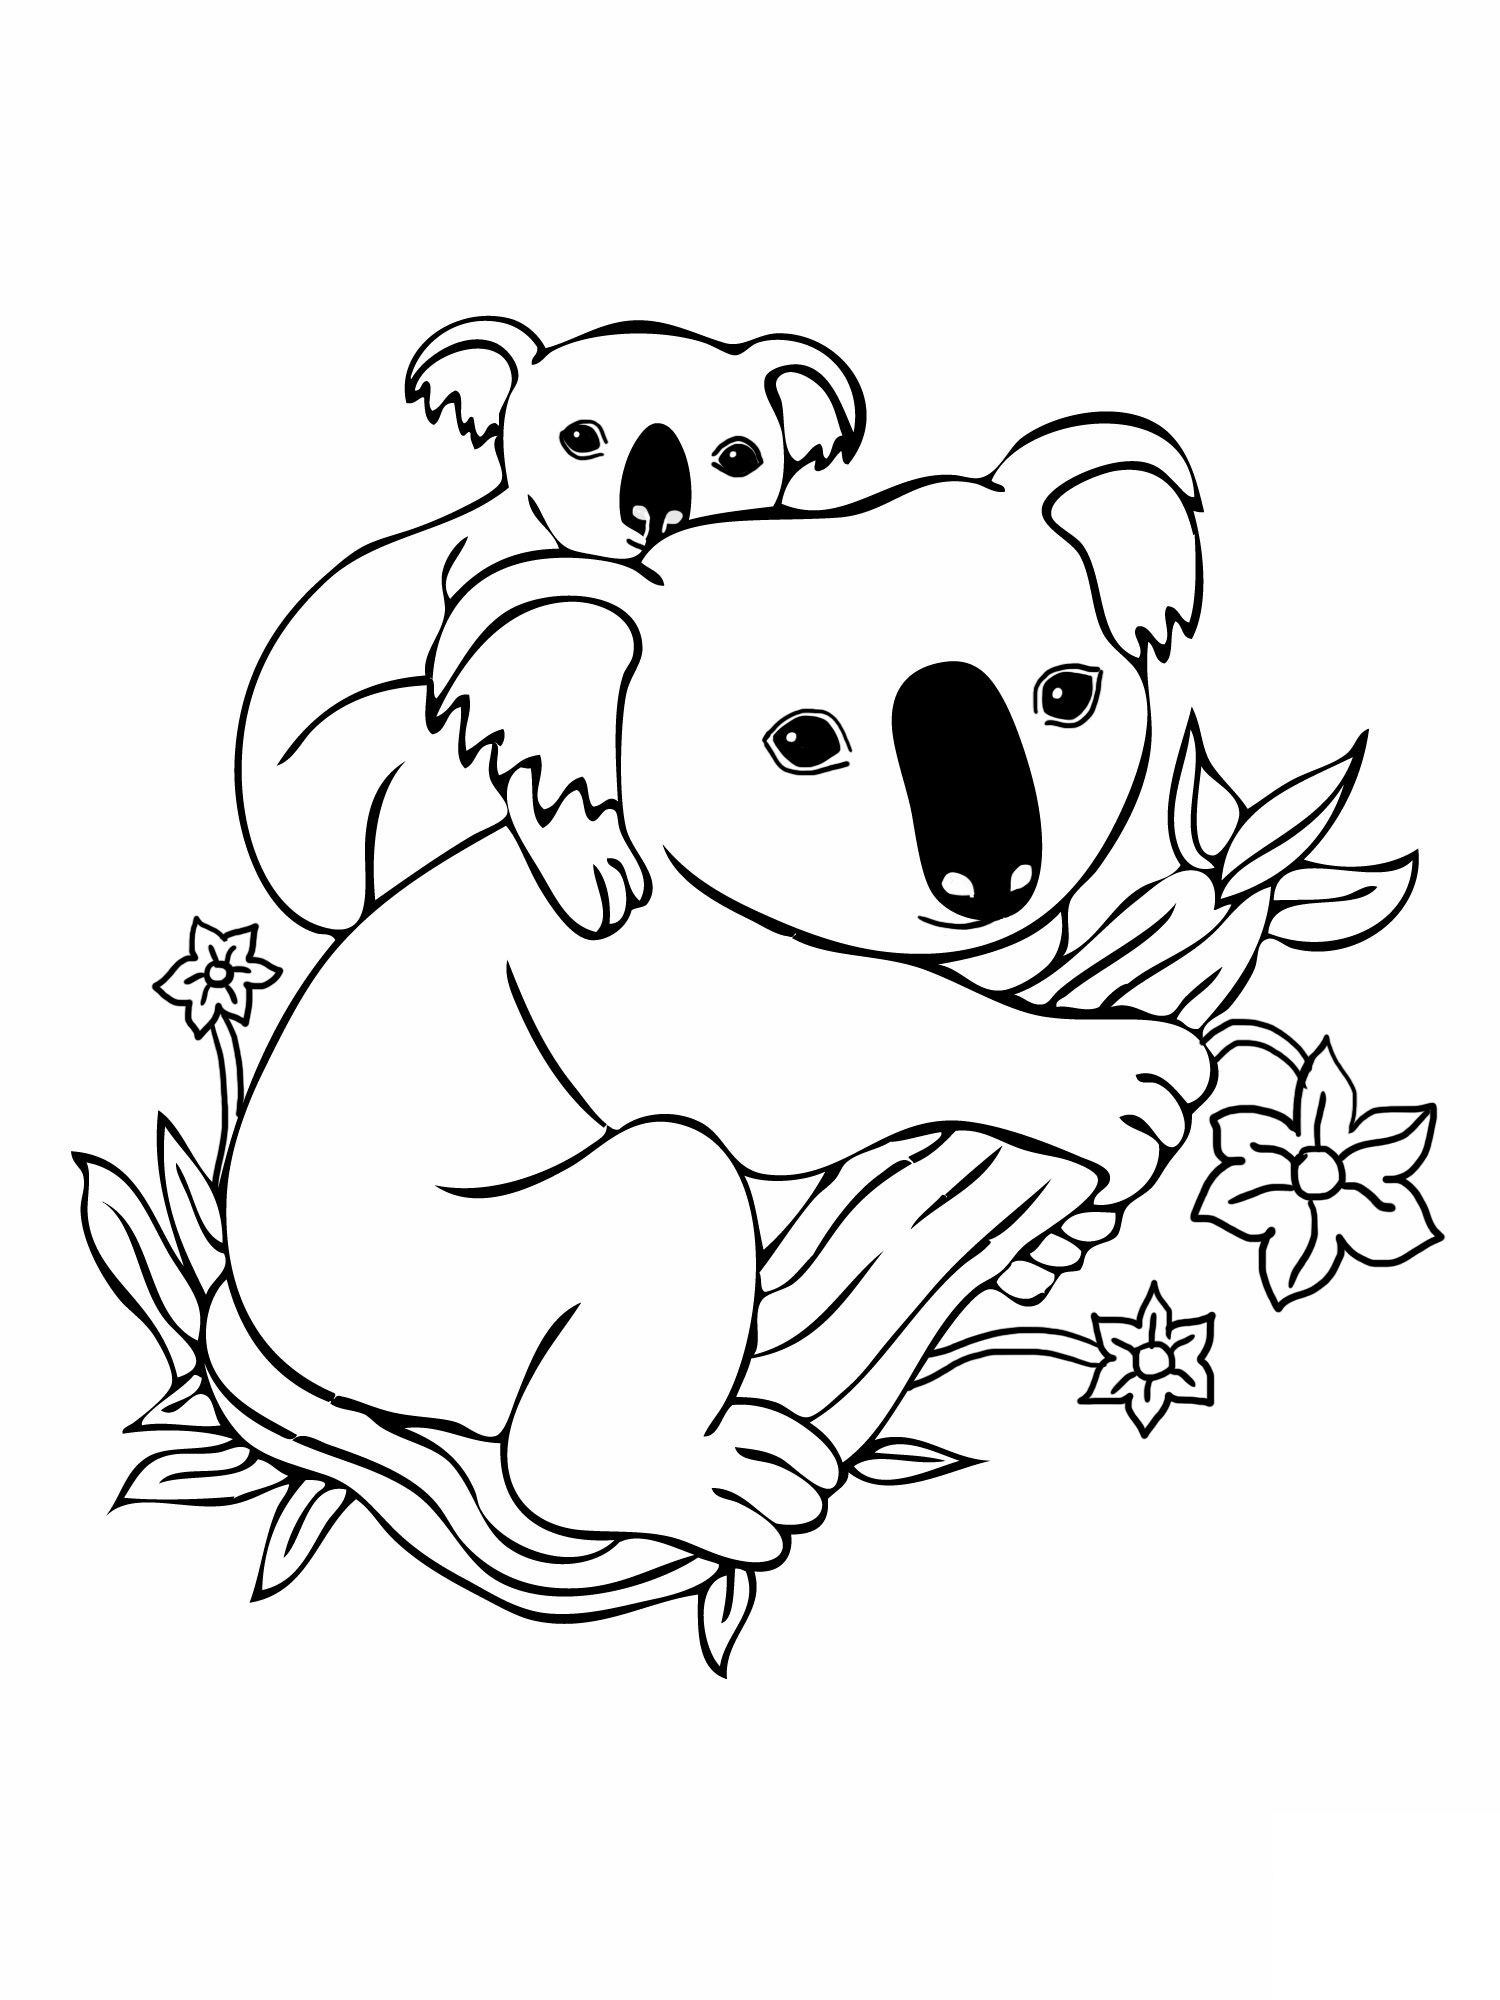 koala coloring page free printable koala coloring pages for kids animal place coloring page koala